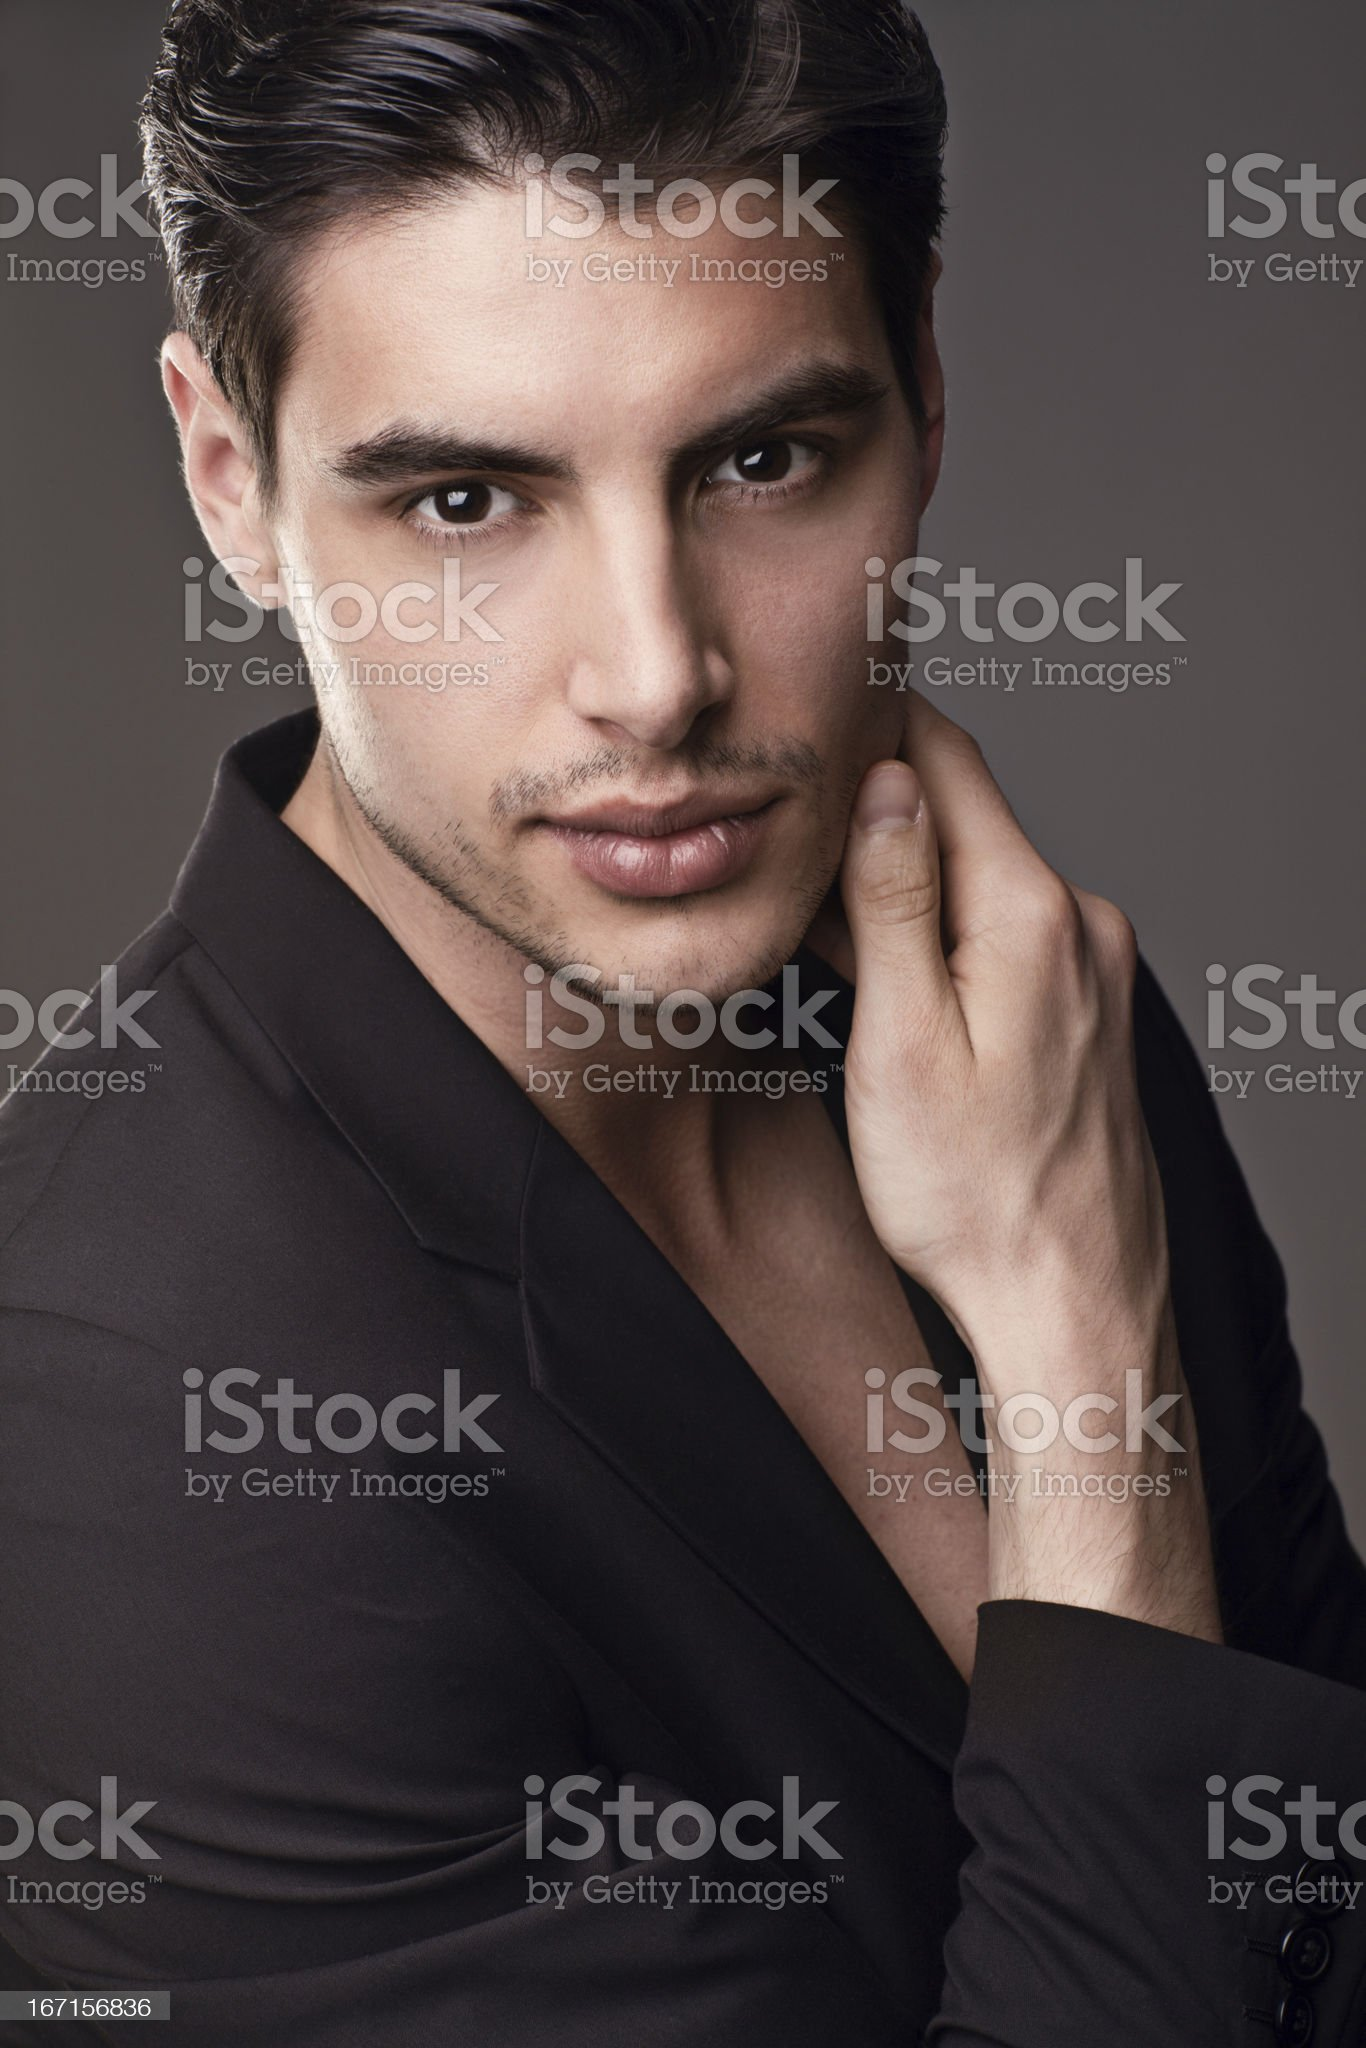 Handsome male model royalty-free stock photo